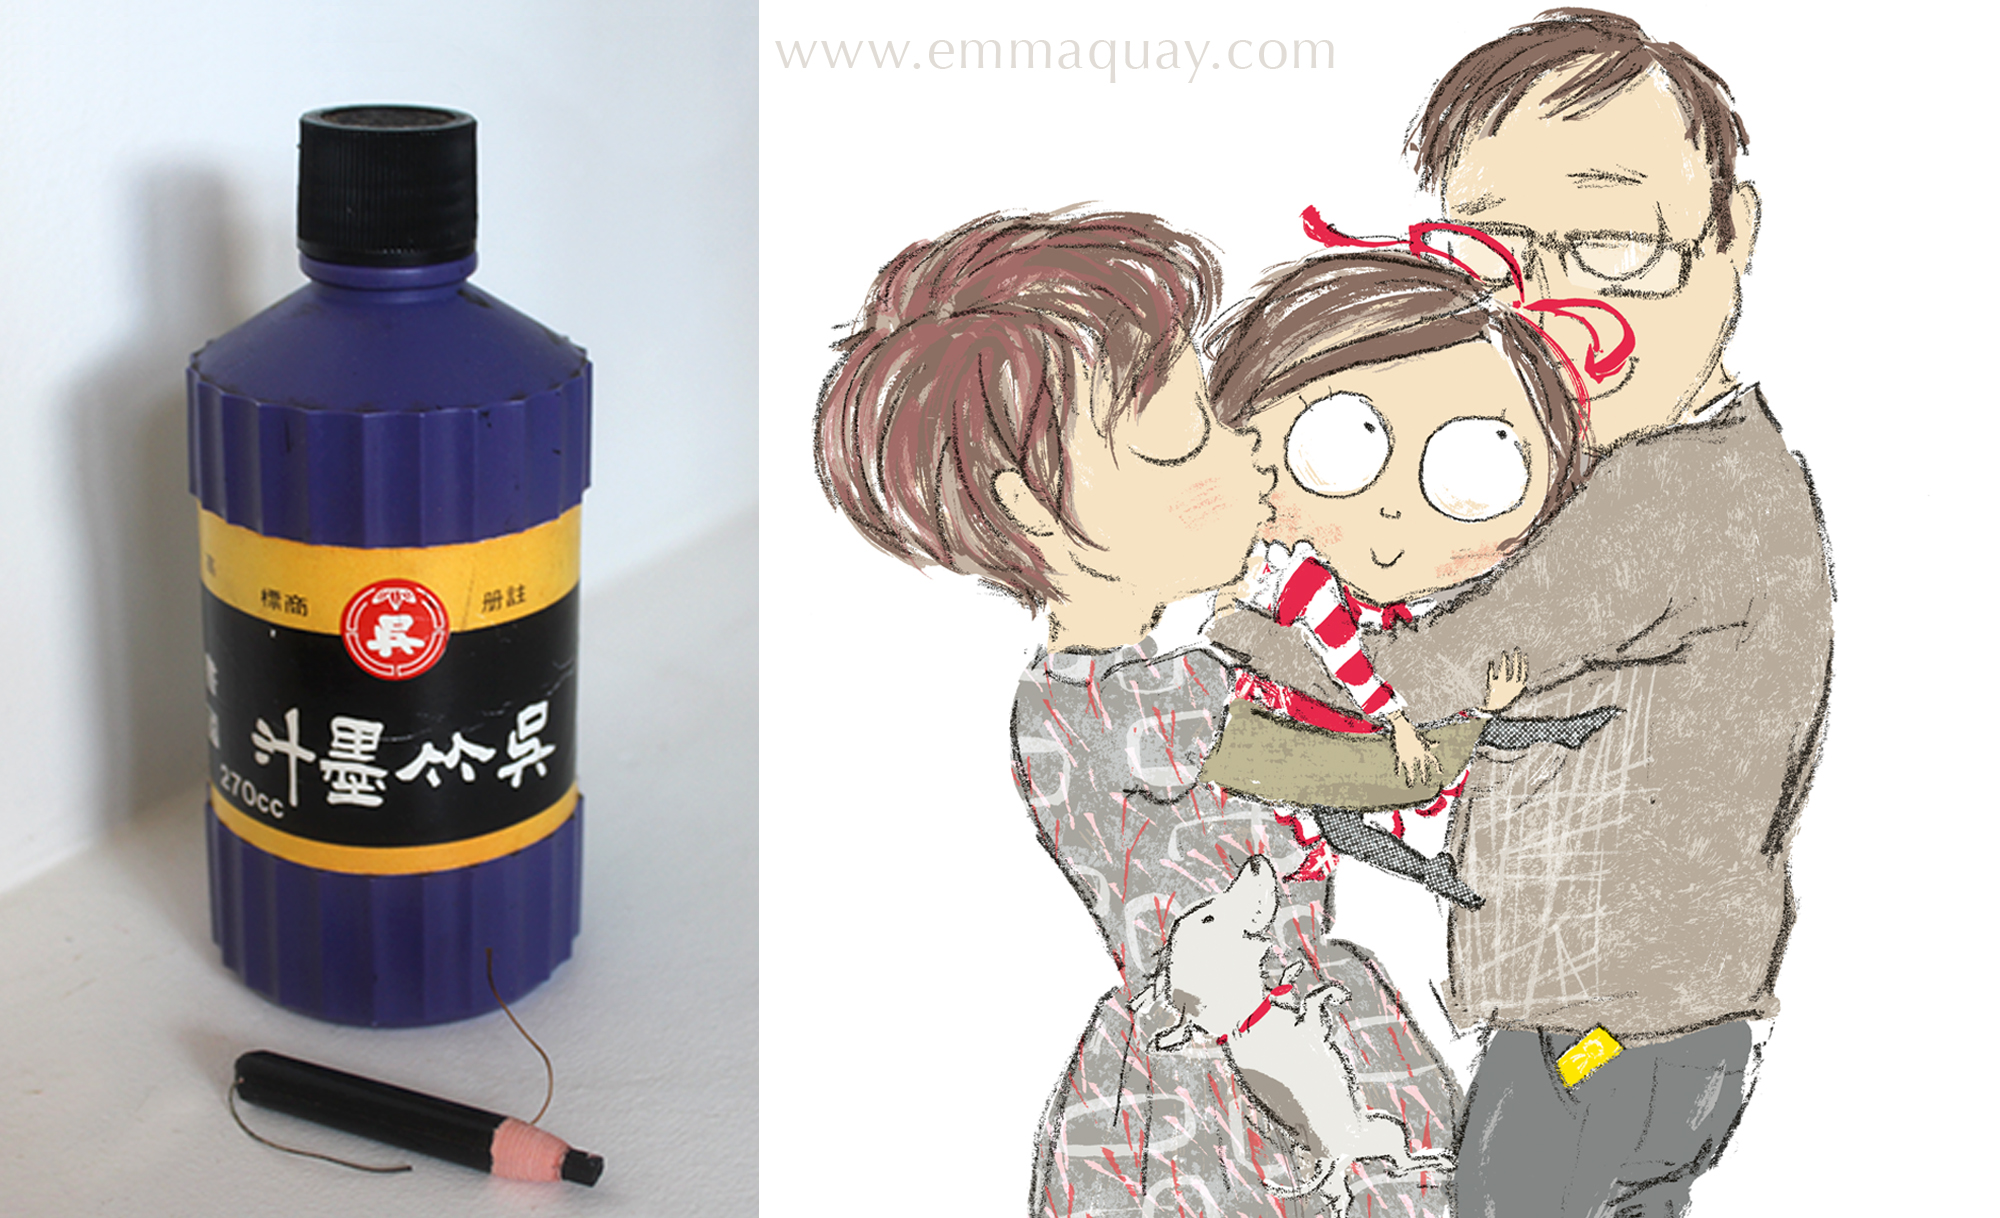 These were the only traditional art materials I used in the book – a bottle of black Japanese ink and a black pencil crayon my kids were given in a colouring pack on a JAL flight. With the help of Photoshop, every line, colour and pattern came from from these two.